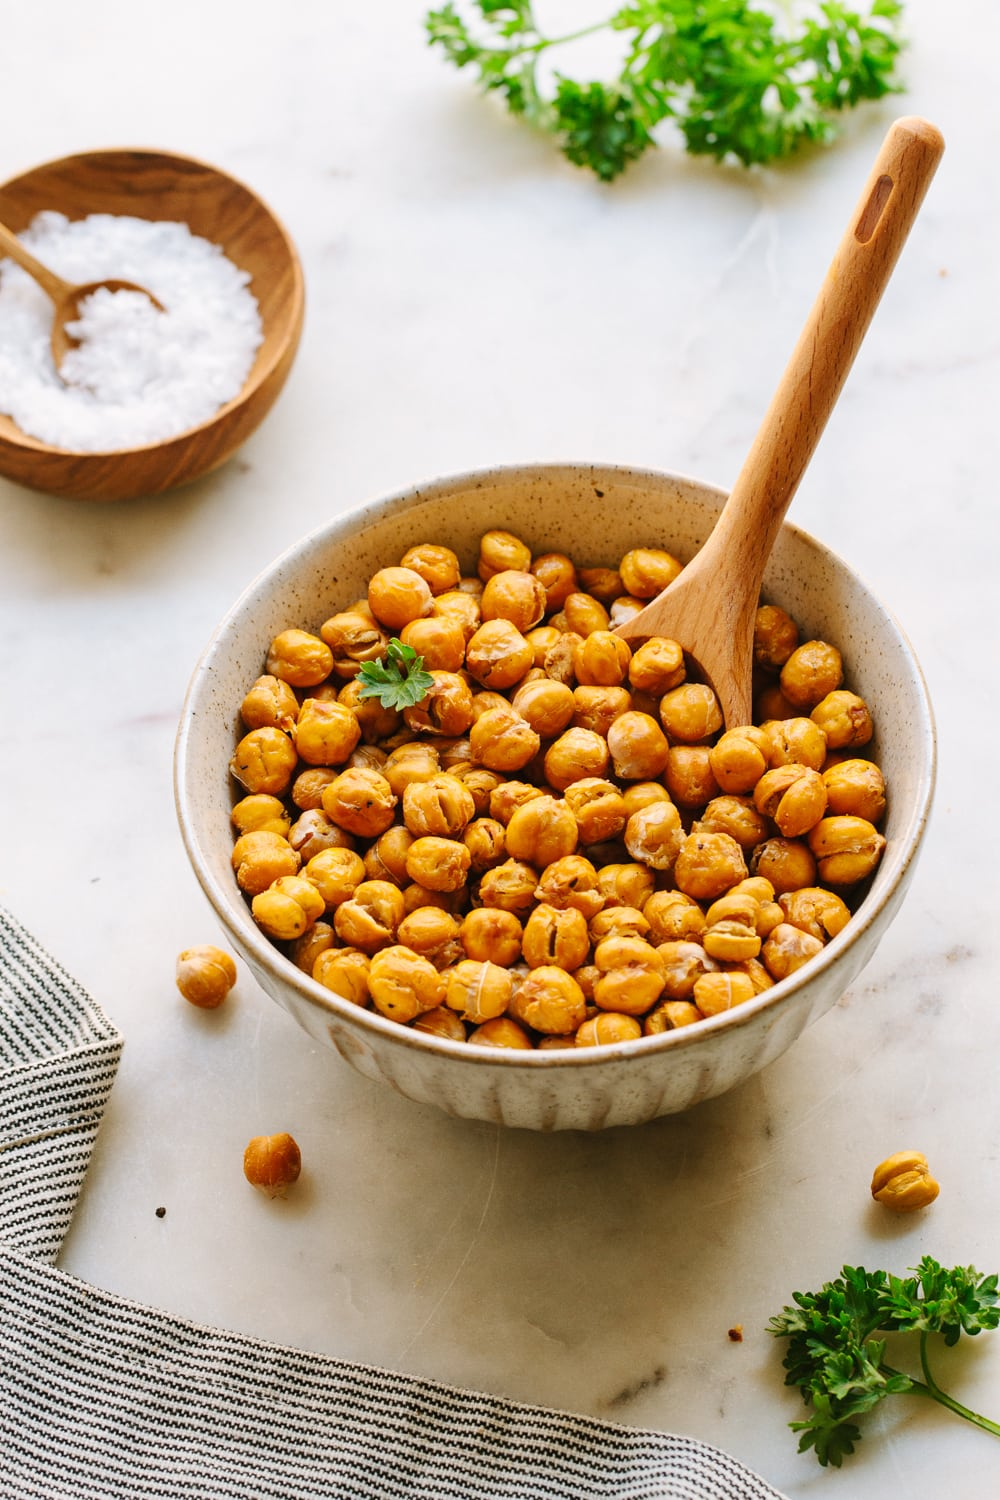 side angle view of bowl full of crispy roasted chickpeas with wooden spoon for scooping.